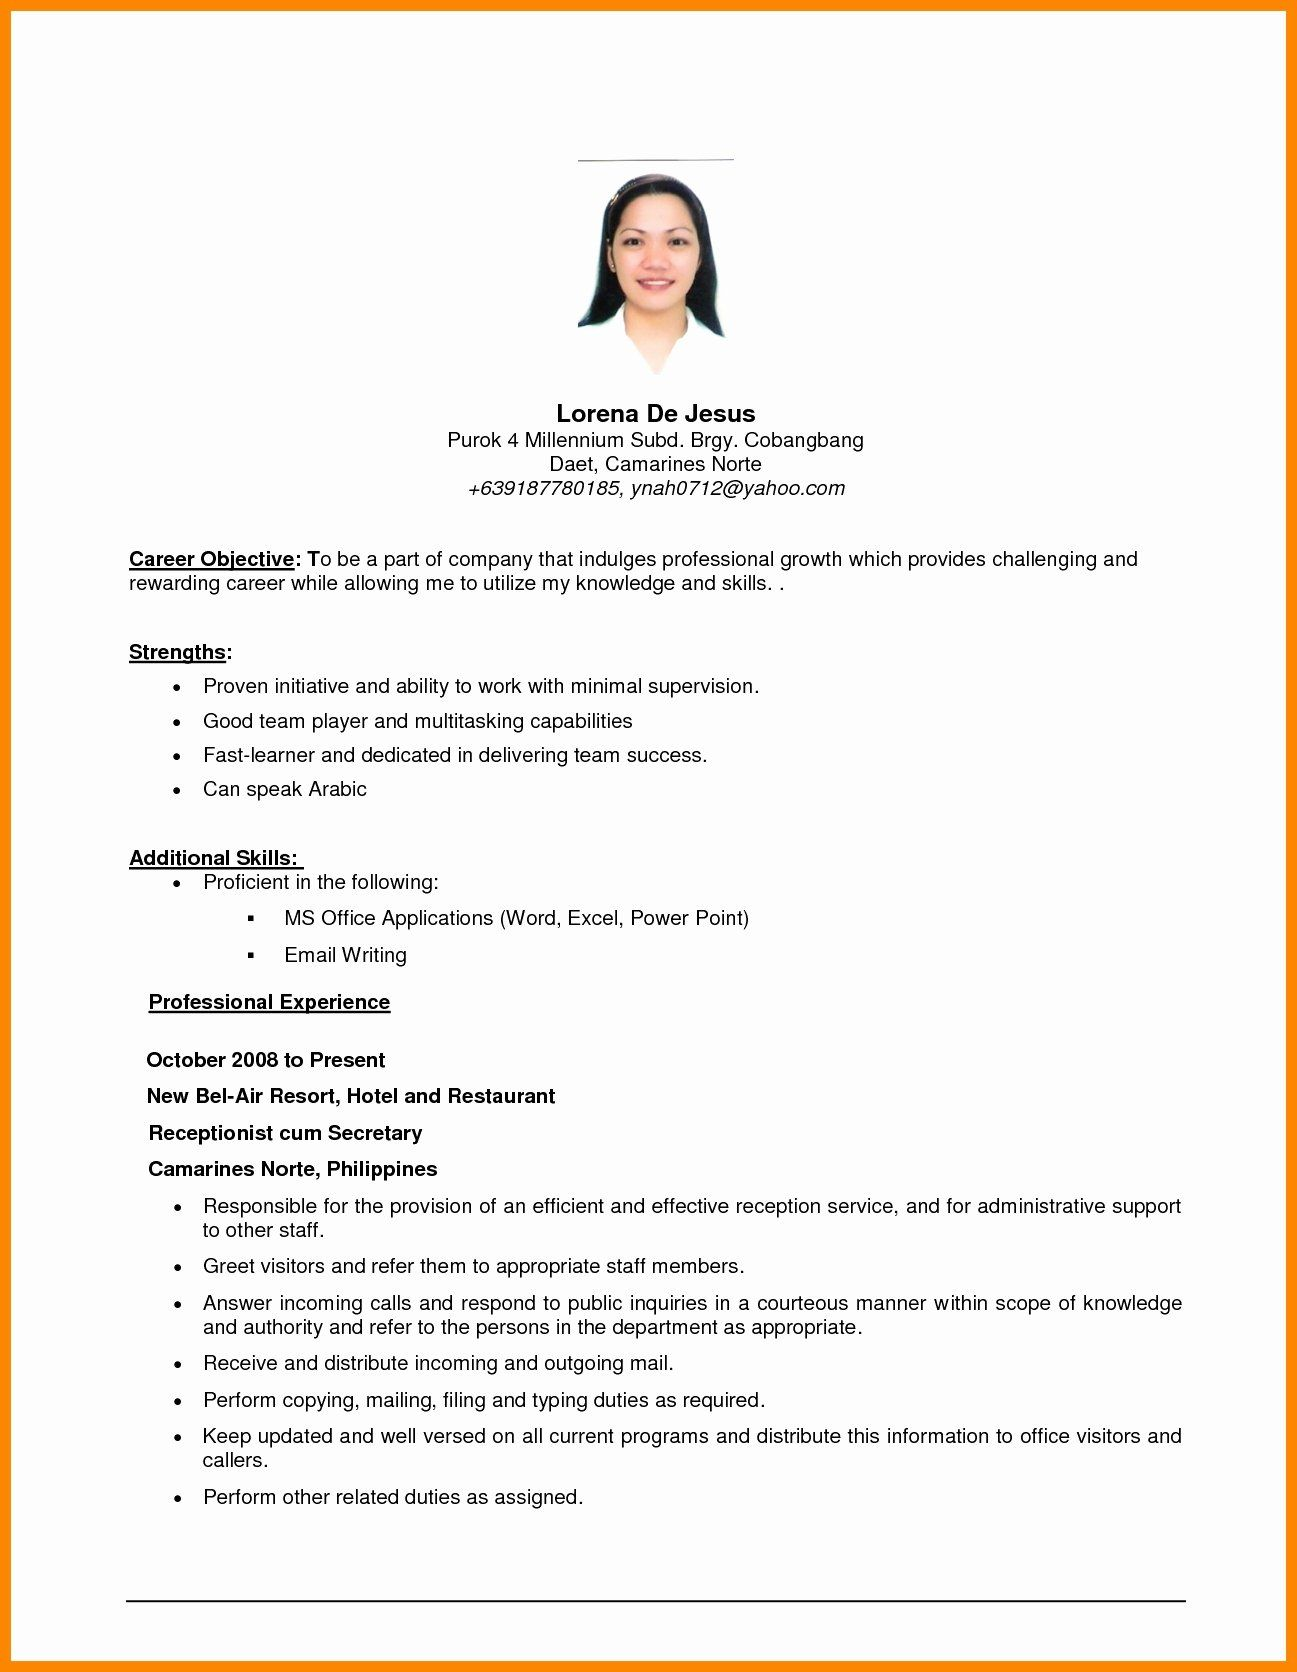 Generic Objective For Resume Inspirational General Resume Objective Examples Resume Objective Sample Career Objectives For Resume Resume Objective Examples